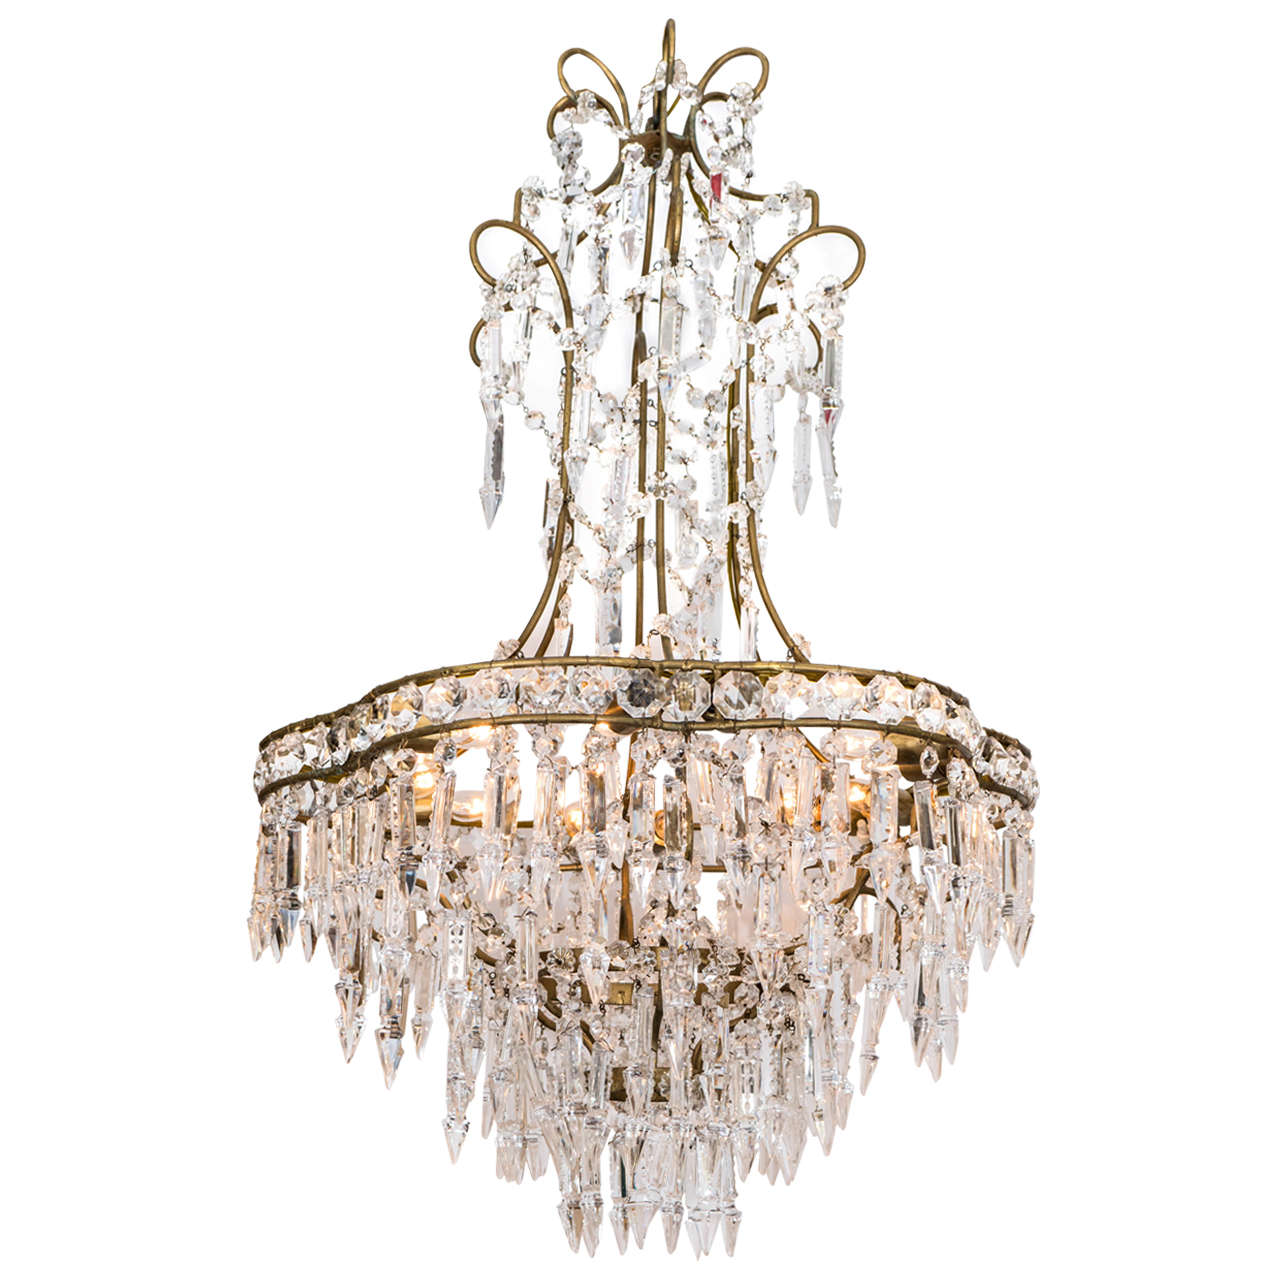 Swarovski Crystal Dollhouse Chandelier: Midcentury Chandelier With Swarovski Cut Crystal Drops For